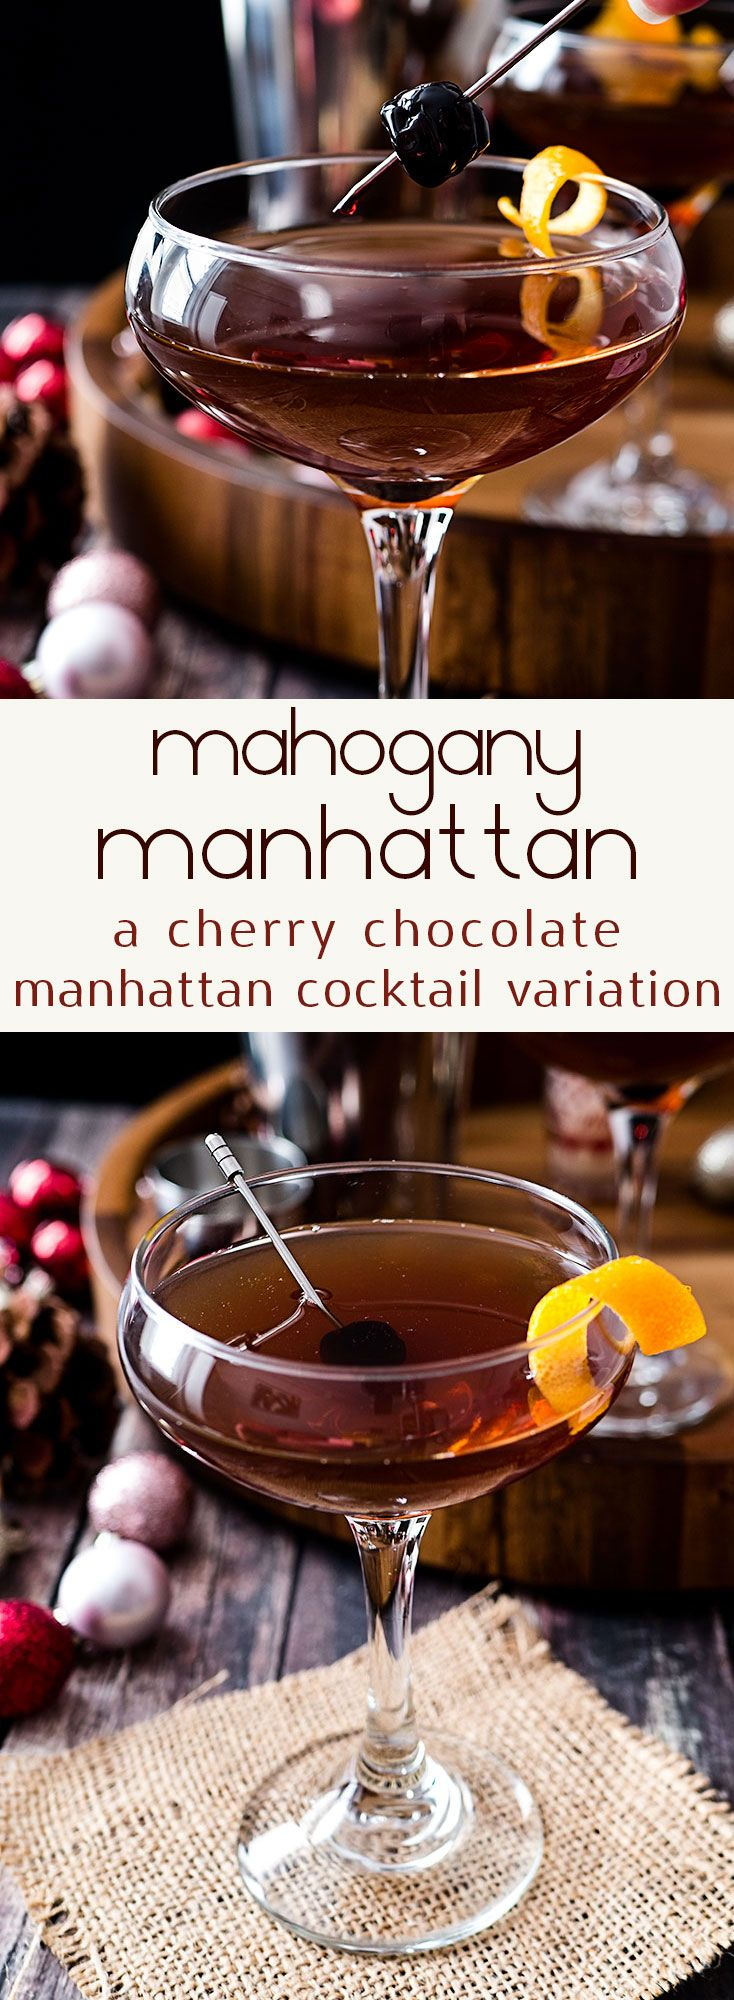 Best 25 Drink names ideas on Pinterest  Alcoholic drink names Beach alcoholic drinks and Top